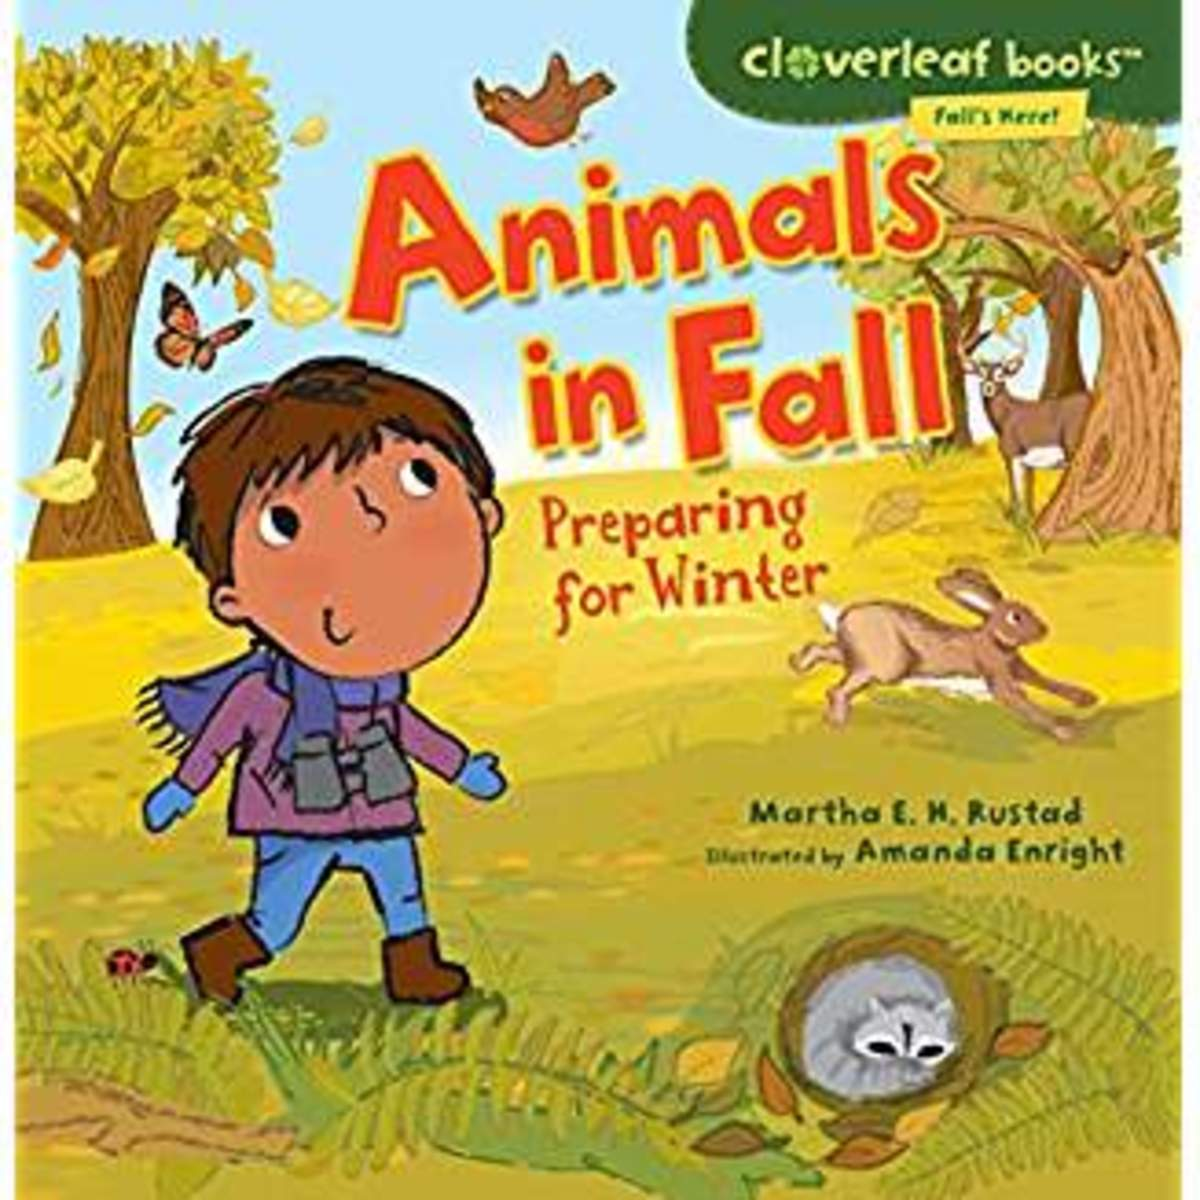 Animals in the Fall: Preparing for Winter by Martha E. H. Rustad